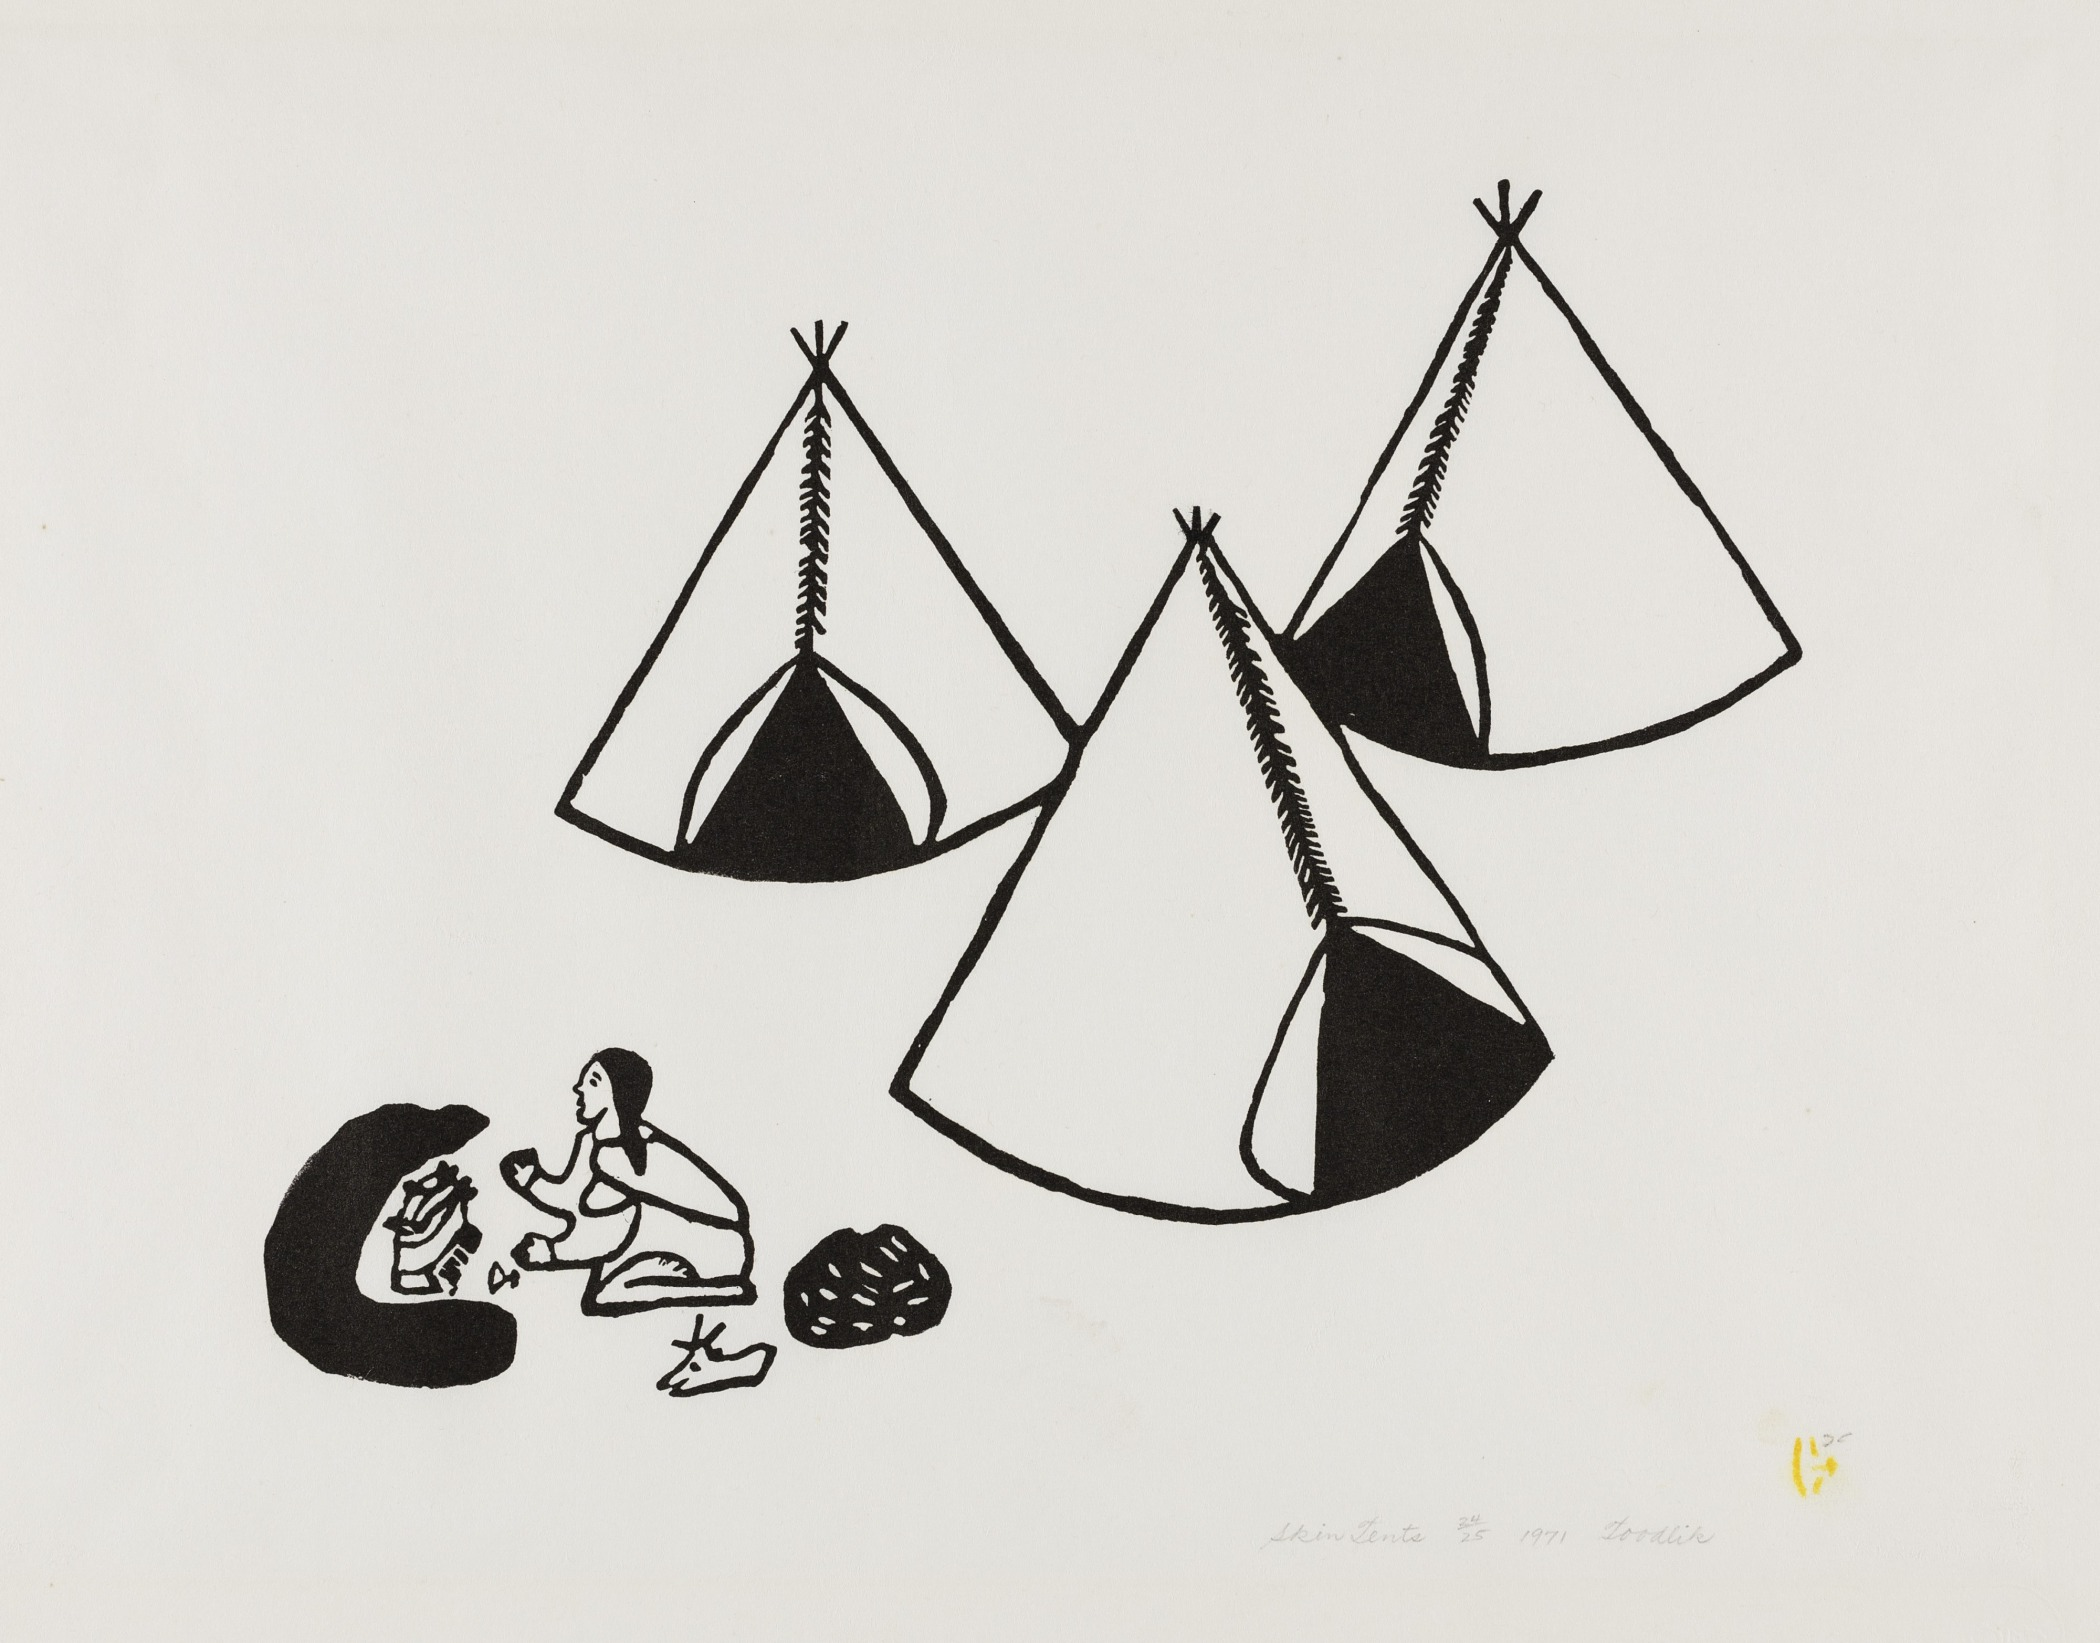 Margaret Toodlik Amarook, Canadian (Inuit), born 1942; Publisher: Sanavik Cooperative, Baker Lake,  Skin Tents , 1971. Stonecut print on paper, edition 24/25, 14 15/16 × 20 3/16 in. Hood Museum of Art, Dartmouth College: Gift of Willy E. Gorrissen; 179.17.25859.